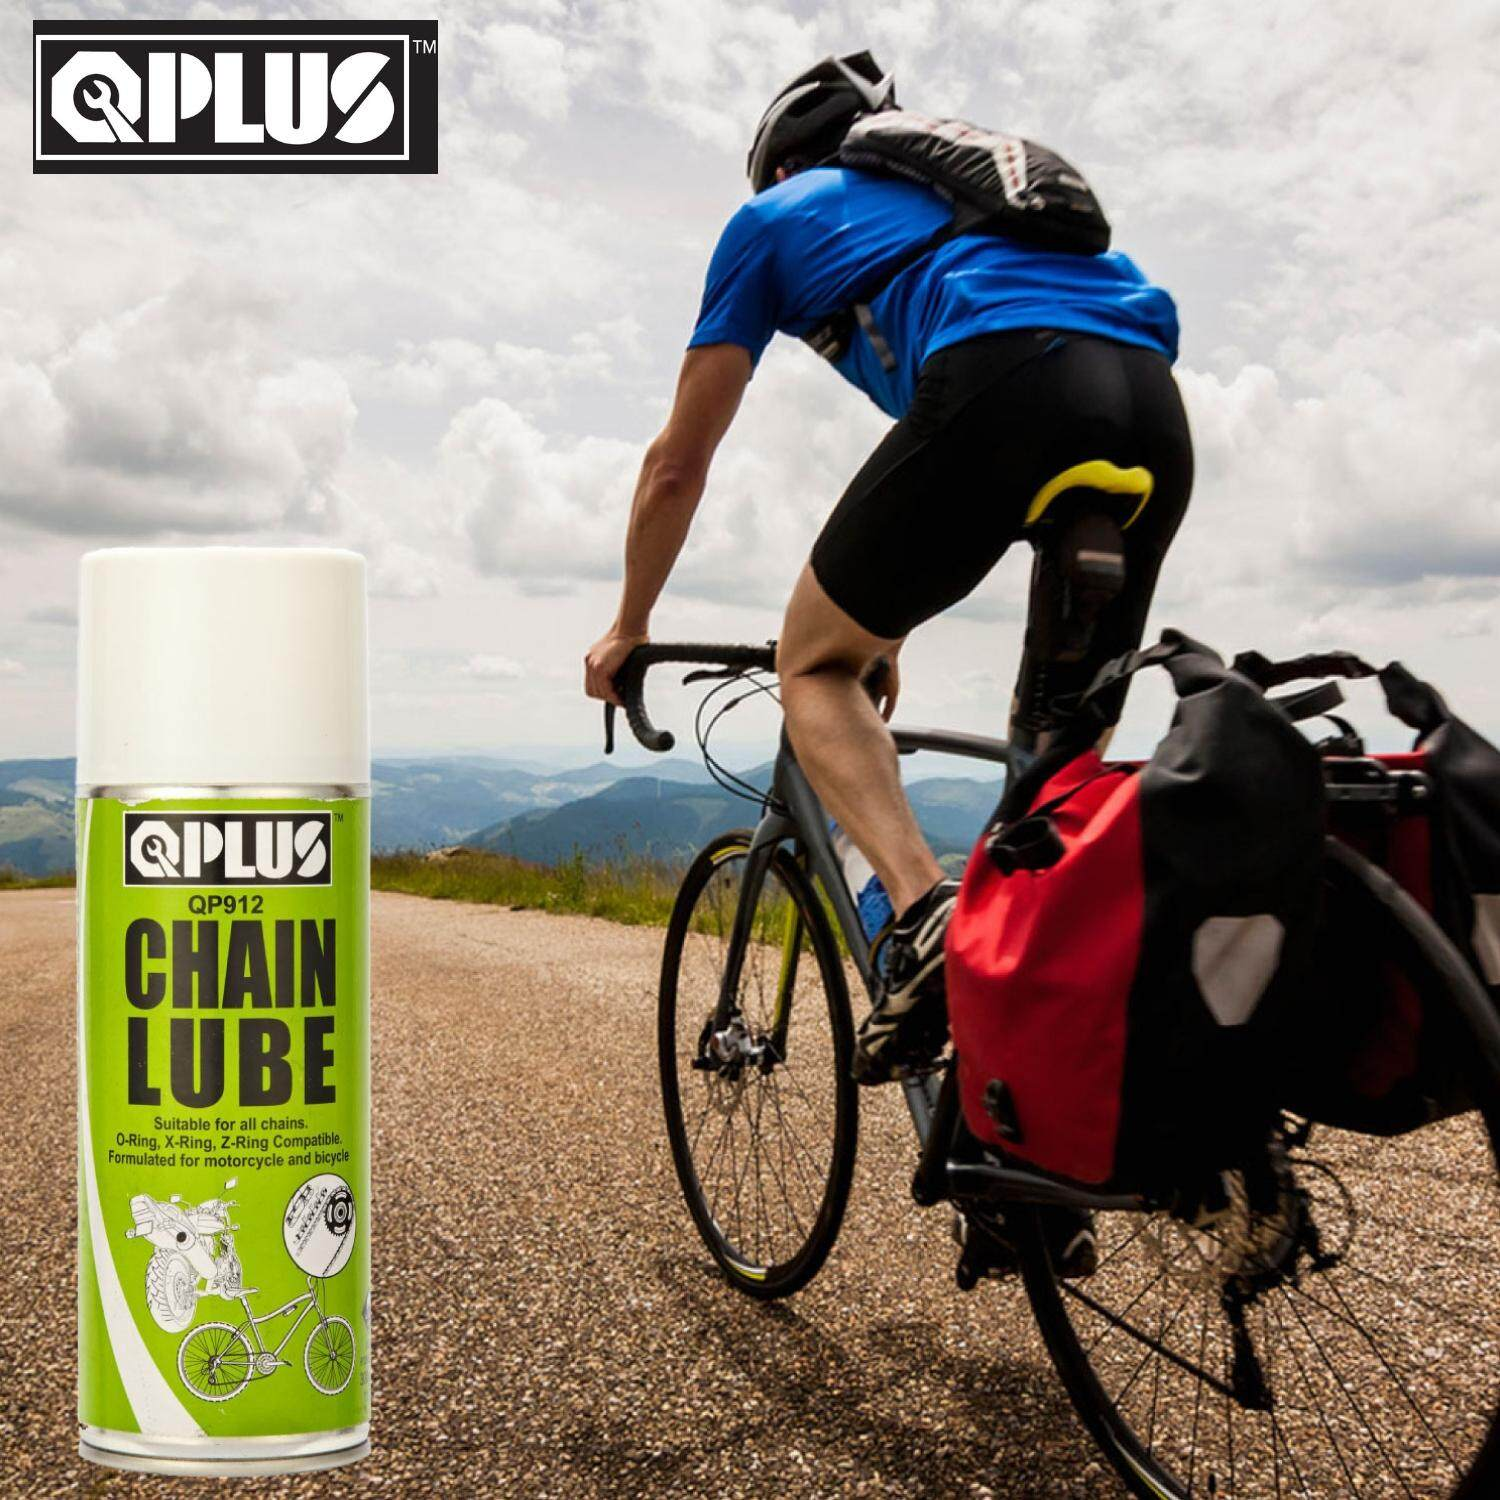 QPLUS QP912 CHAIN LUBE/ DRY LUBE/ OIL LUBRICANT FOR MOTORCYCLE & BICYCLE (300GM)